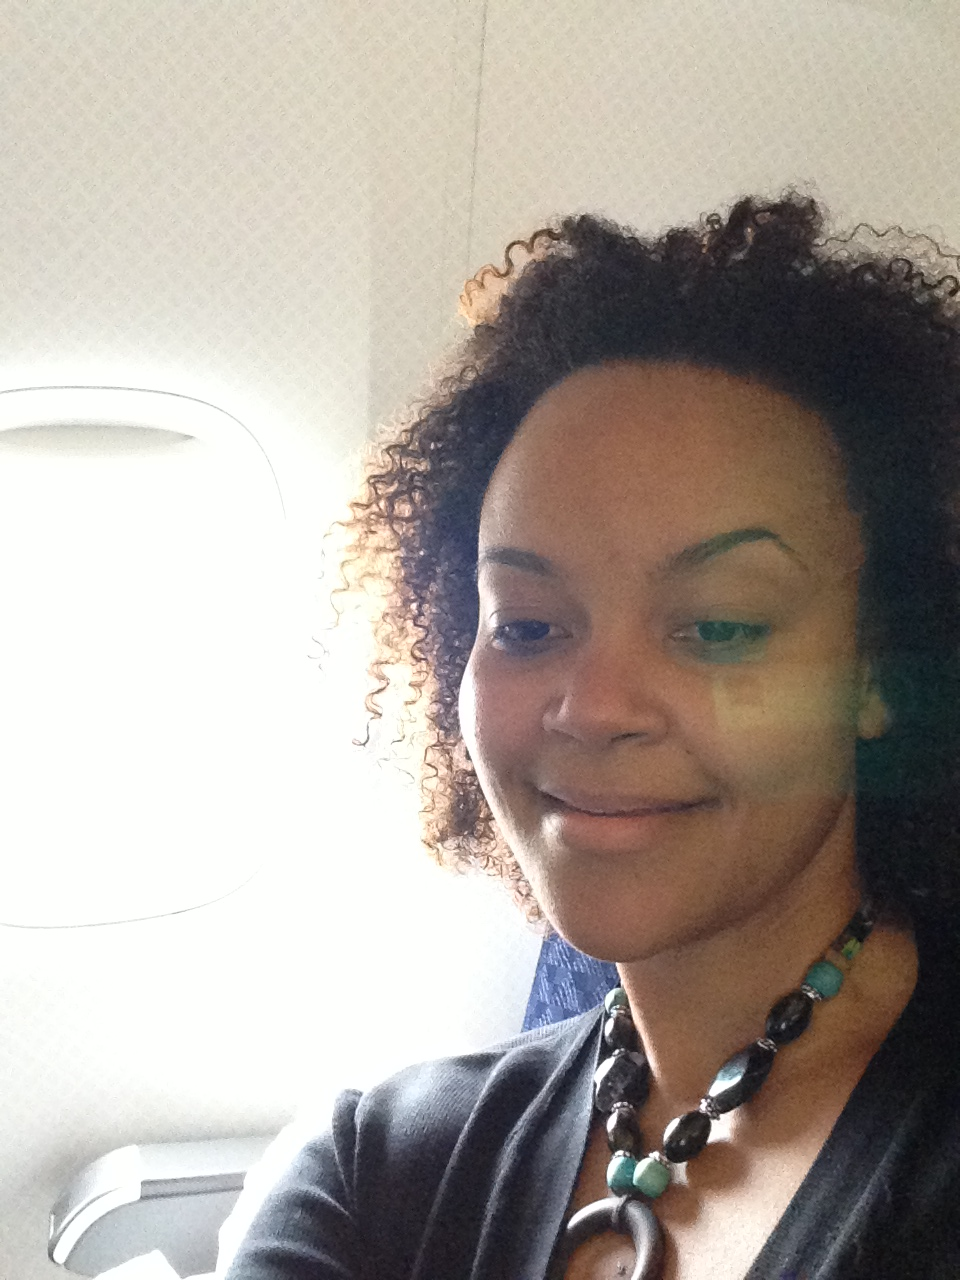 Me Natural on the Plane!